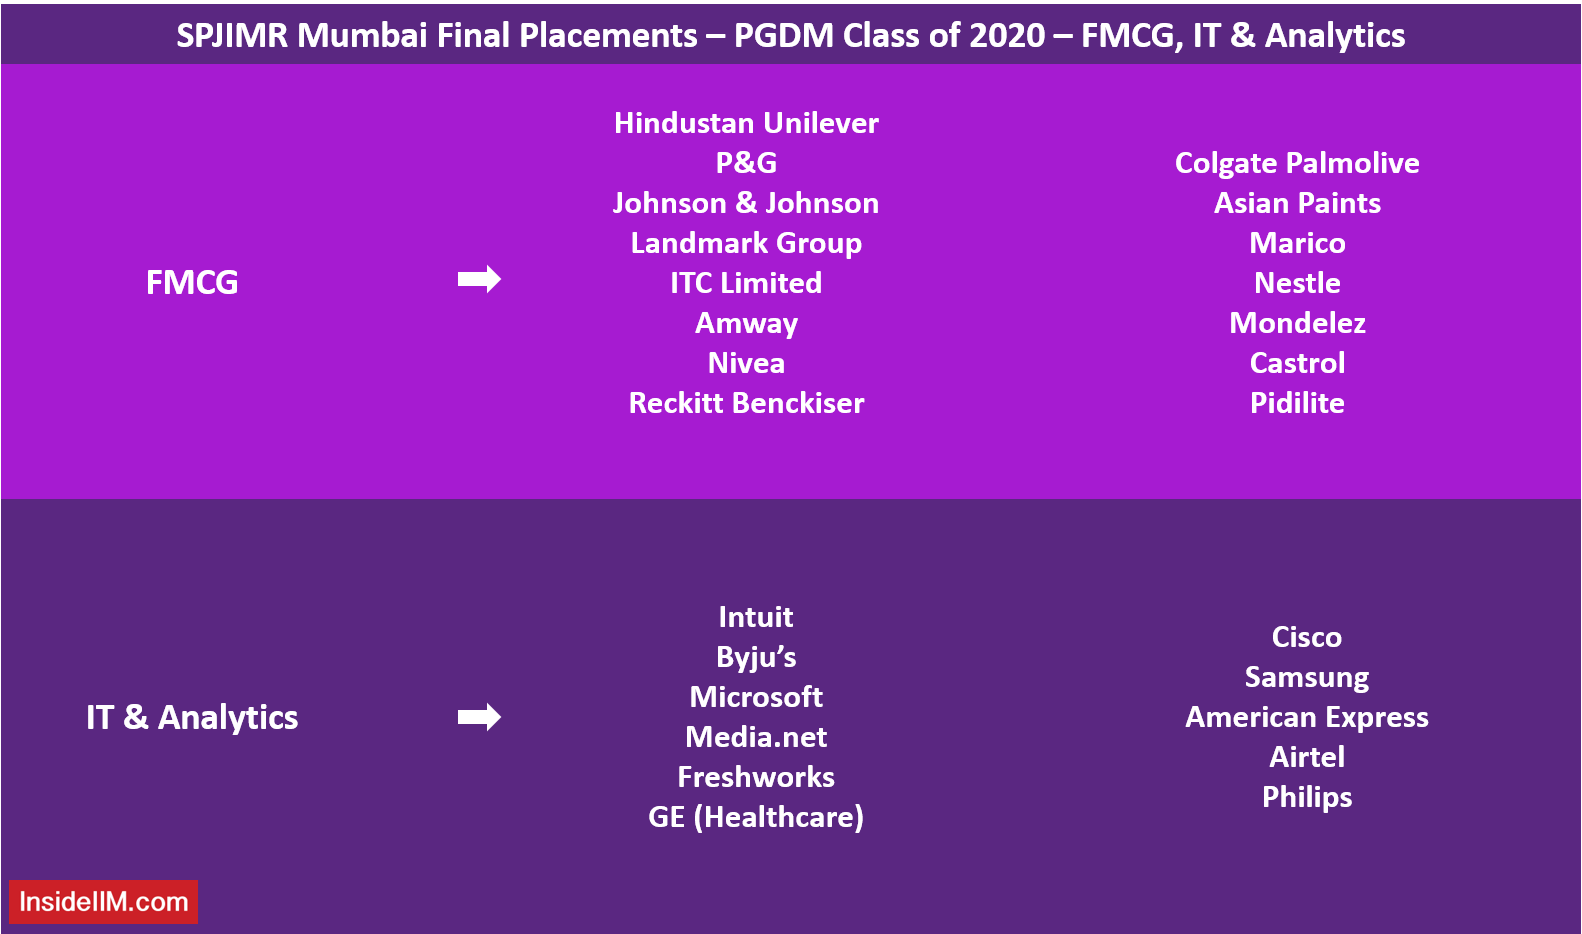 SPJIMR Final Placements - PGDM Class of 2020 - FMCG, IT & Analytics